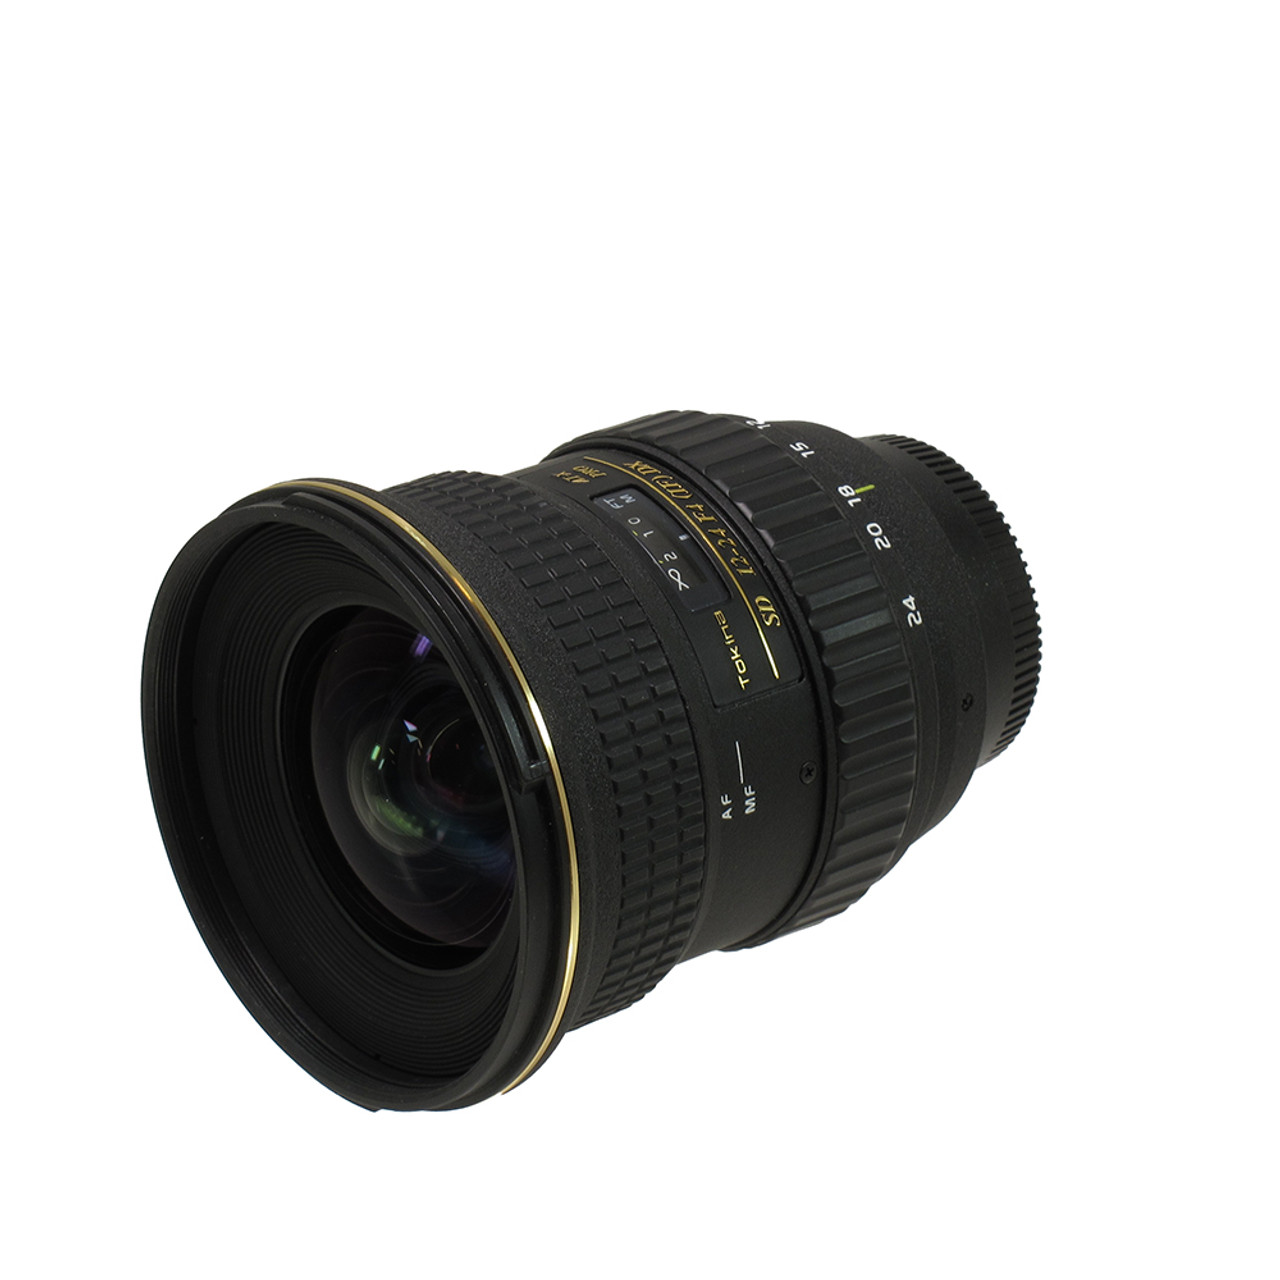 USED TOKINA AT-X PRO 12-24MM F4  DX